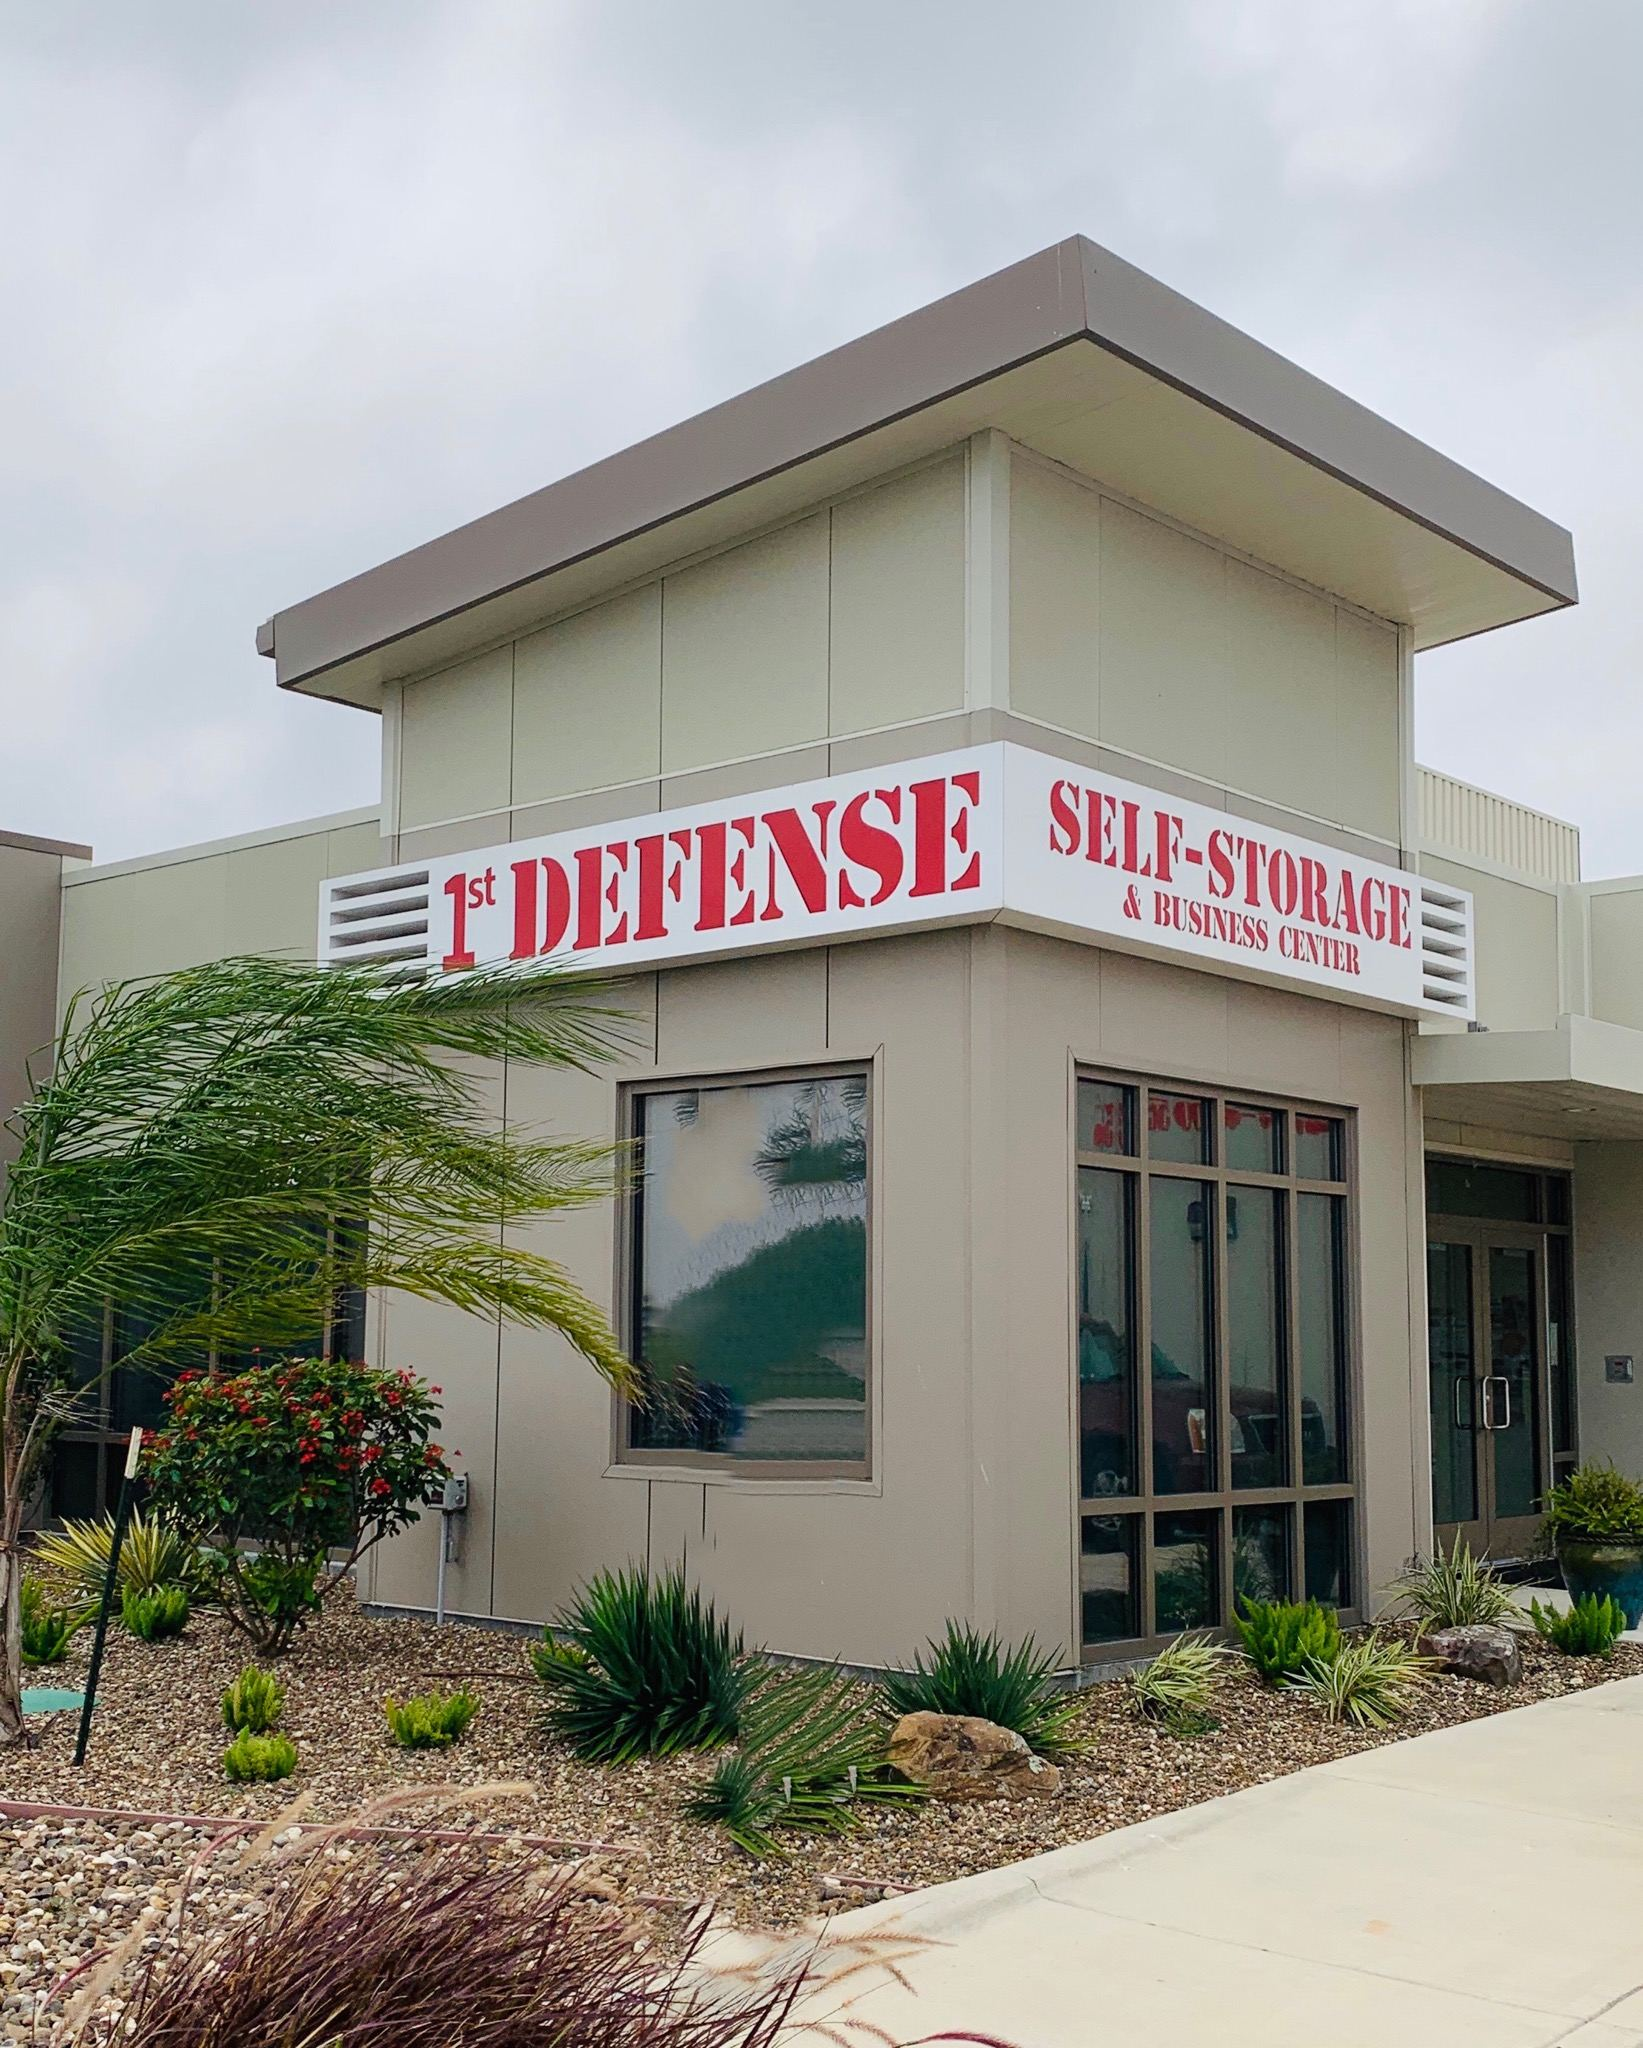 1st Defense Self-Storage: First In Defense - First In Surveillance